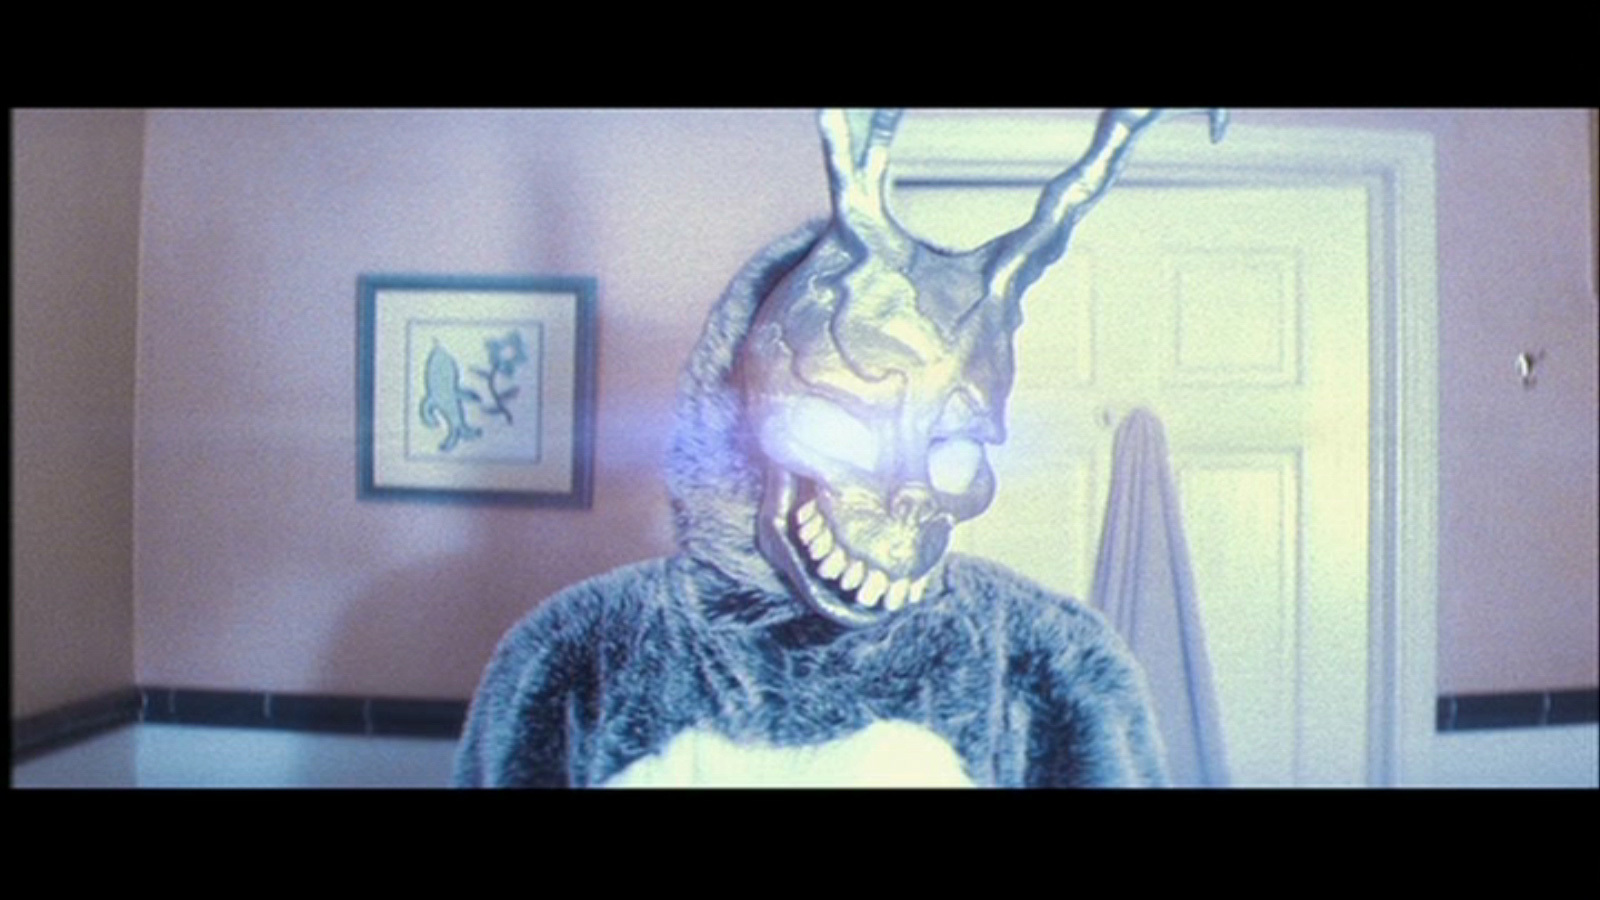 donnie darko movie review essay. Black Bedroom Furniture Sets. Home Design Ideas